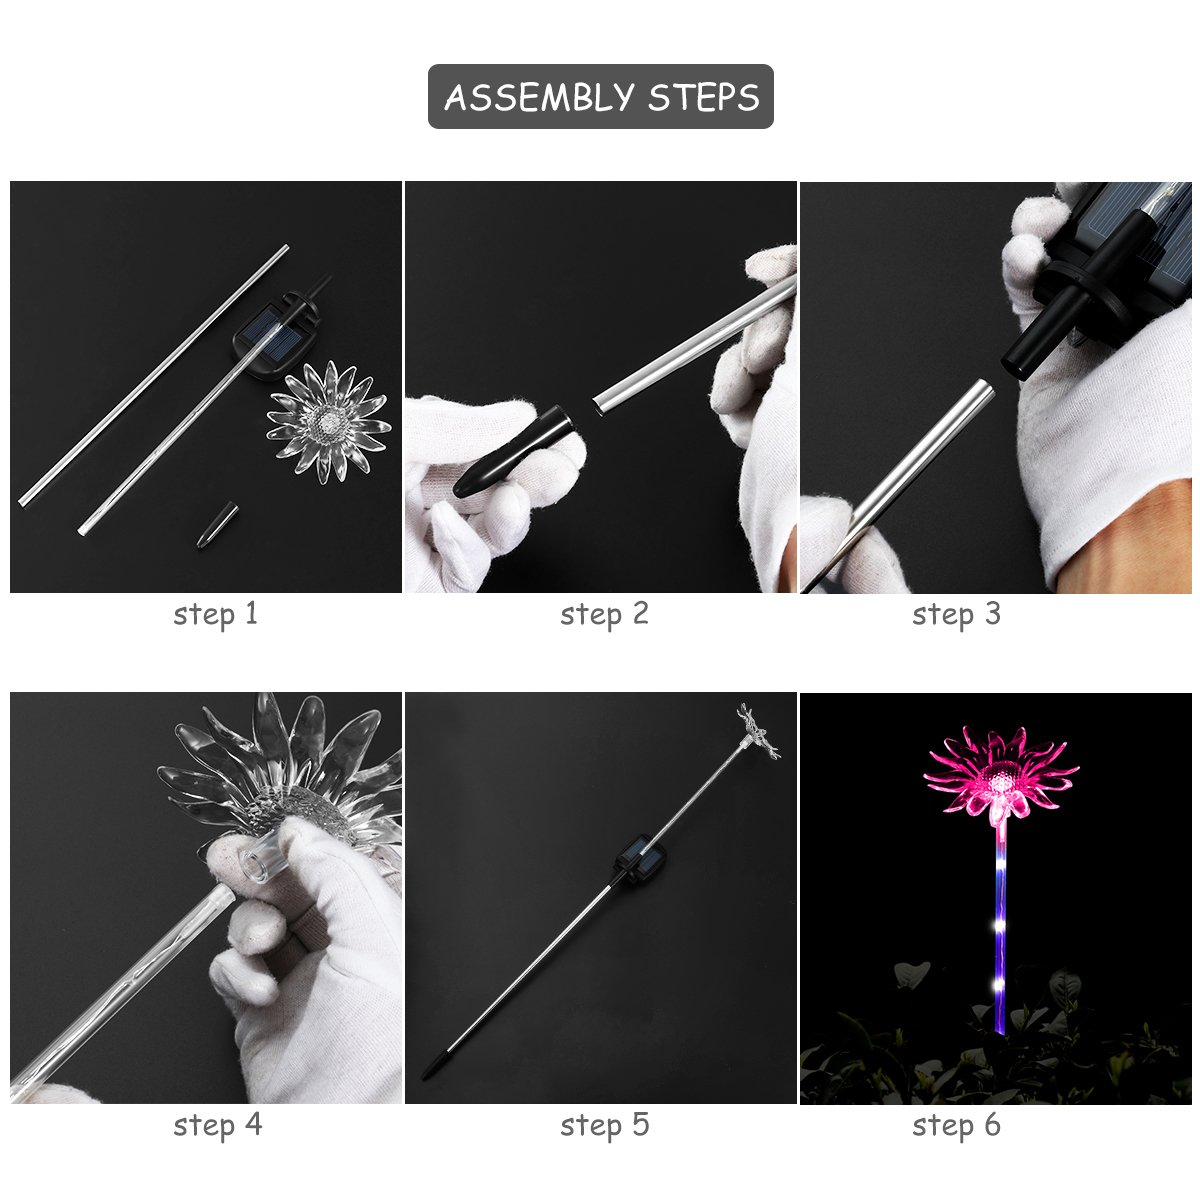 YUNLIGHTS 4pcs Solar Garden Lights Outdoor Garden Stake Lights Multi-Color Changing LED Solar Lights with Purple LED Light Stake for Garden Patio Backyard Decoration (Lotus,Dandelion,Lily,Sunflower) by YUNLIGHTS (Image #8)